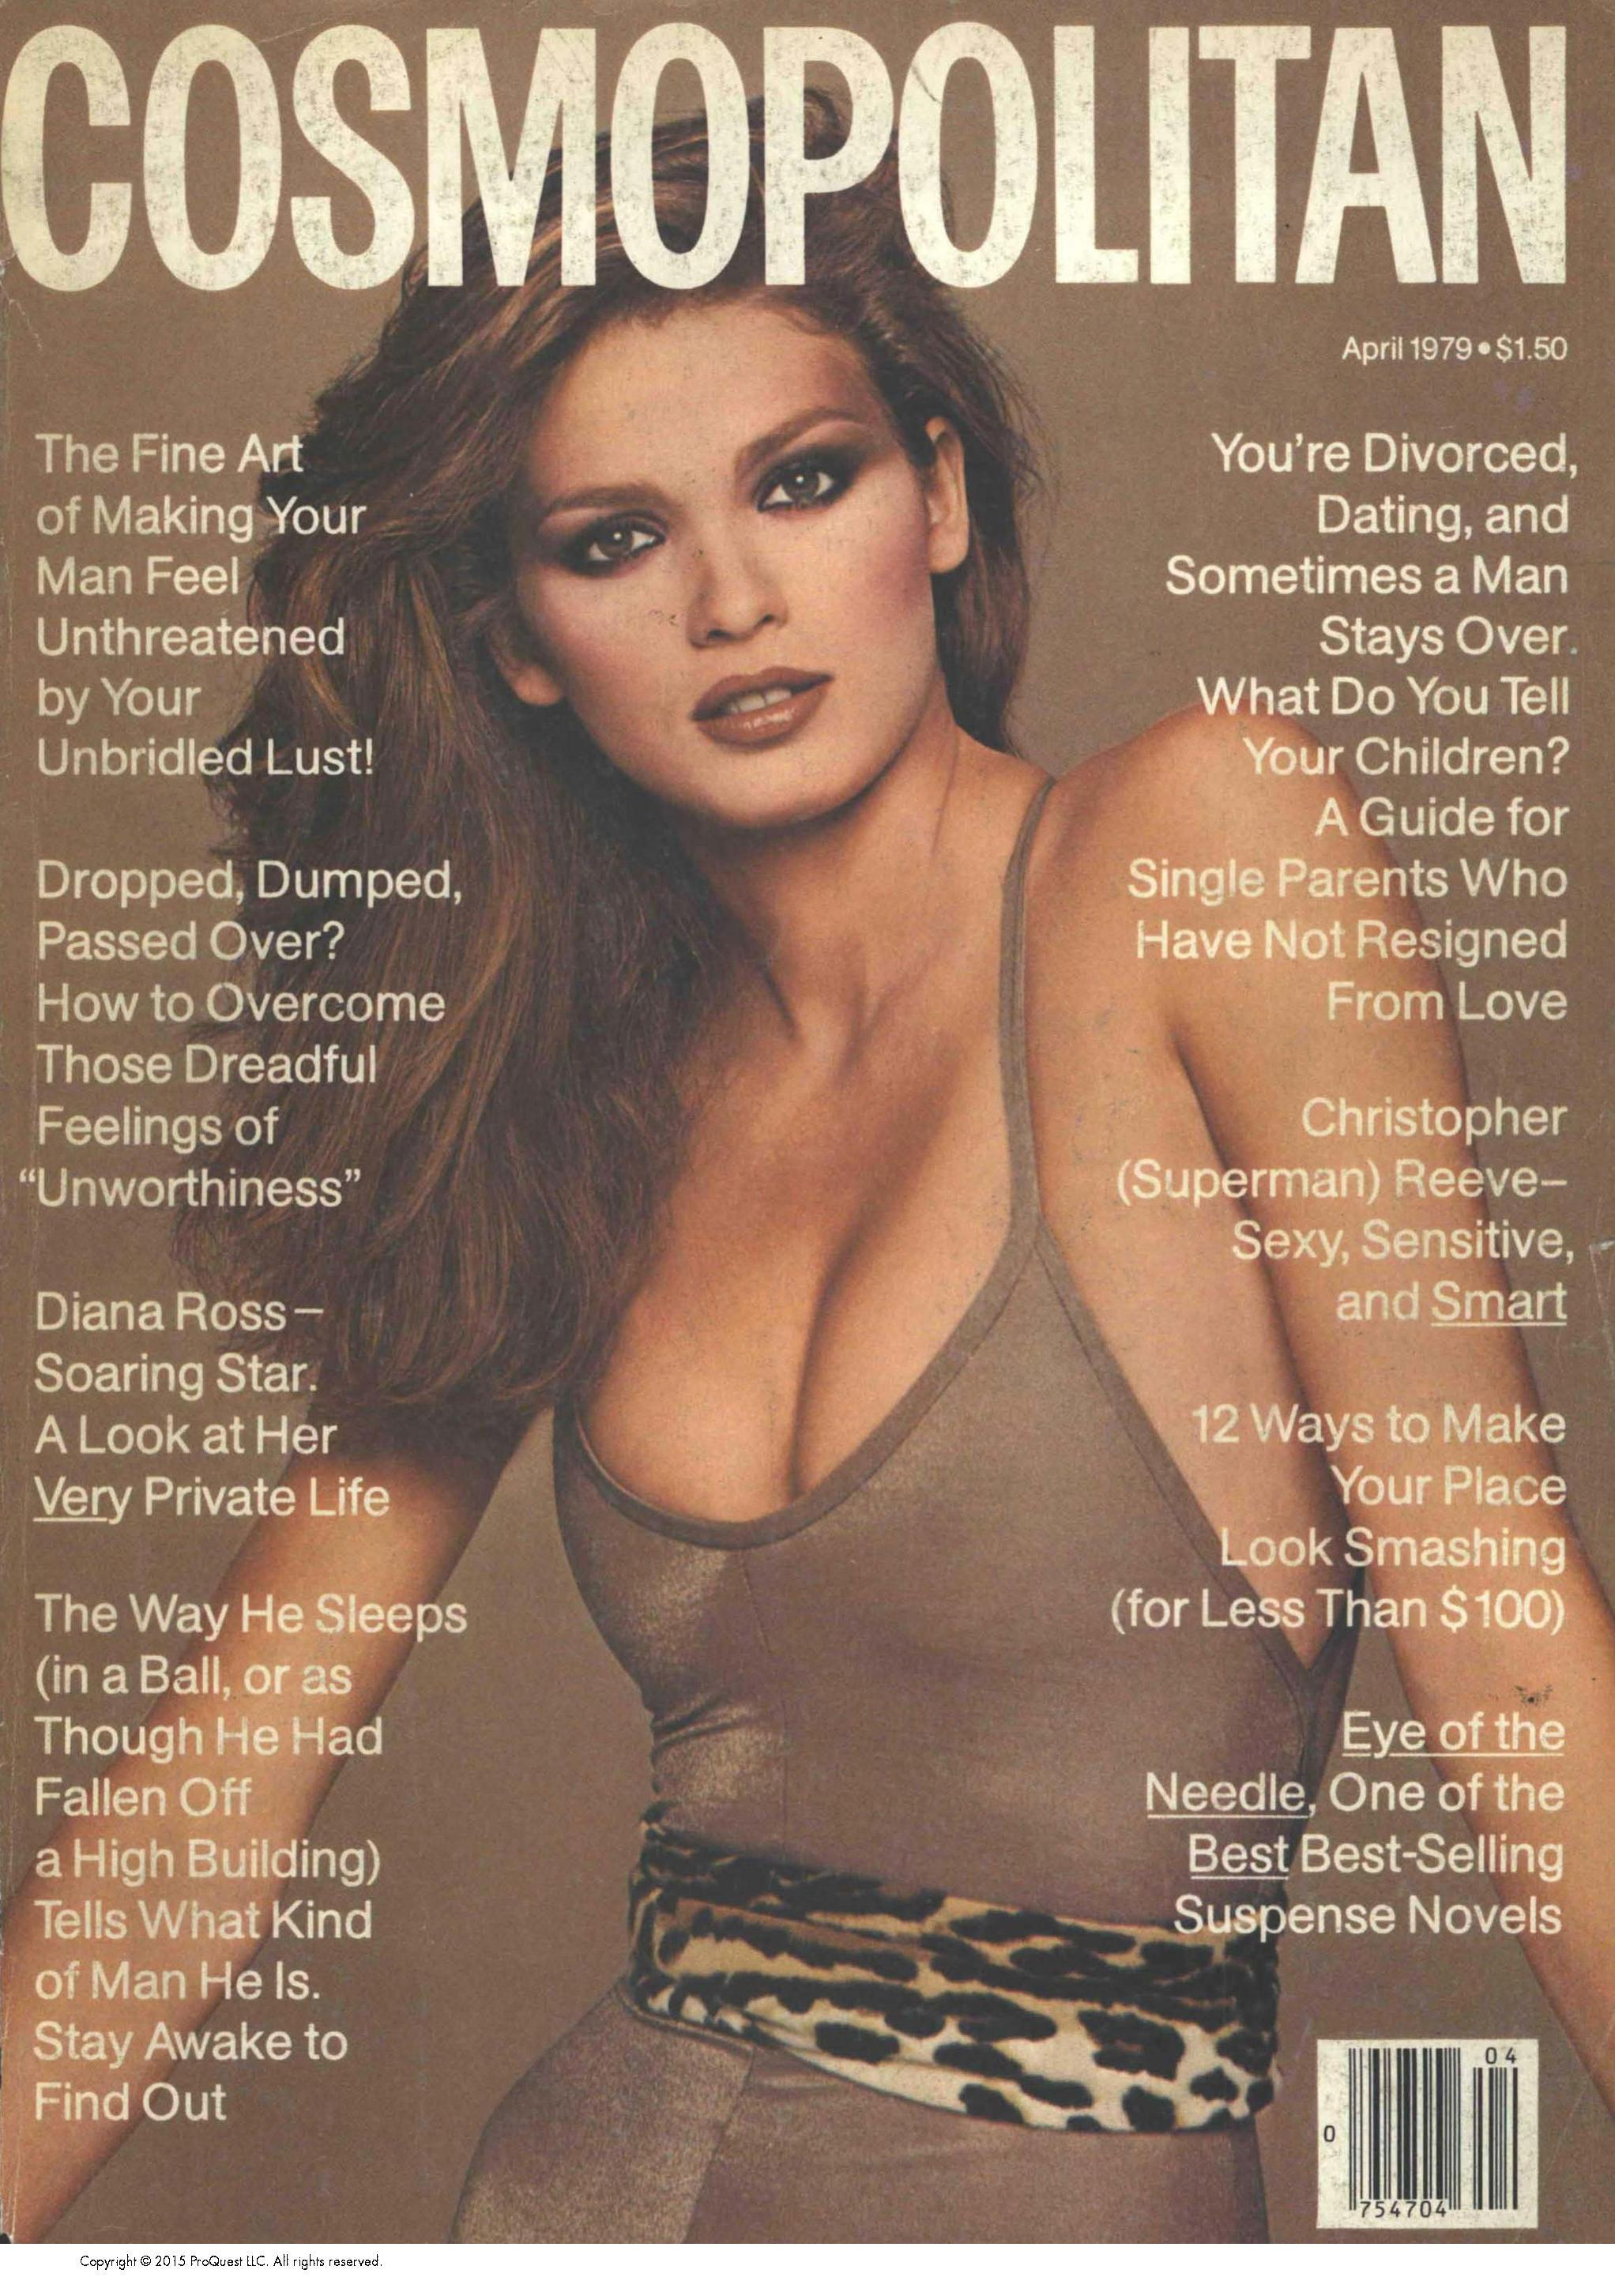 Gia Carangi in a Kamali unitard on the cover of Cosmopolitan, April 1979.